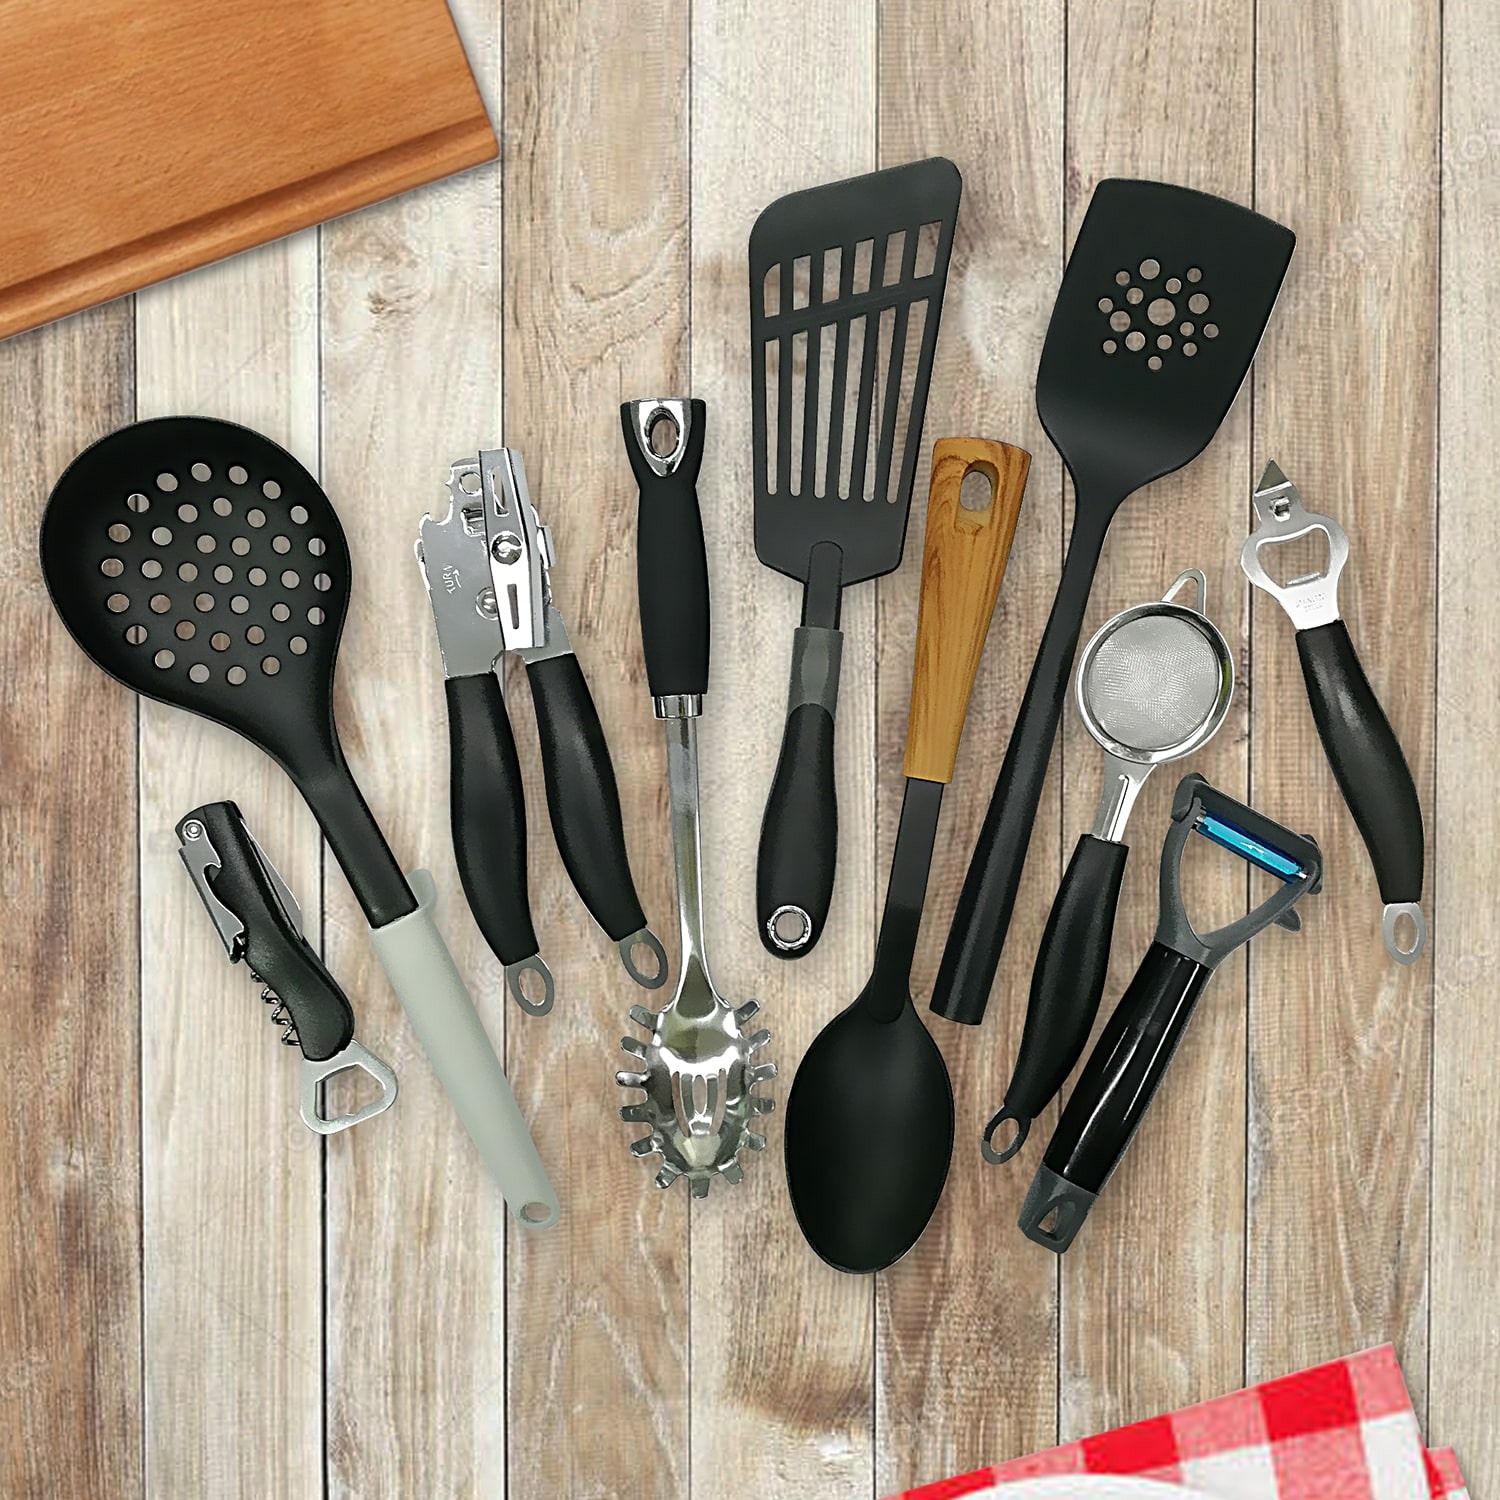 Masflex Kitchen Utensils and Gadgets